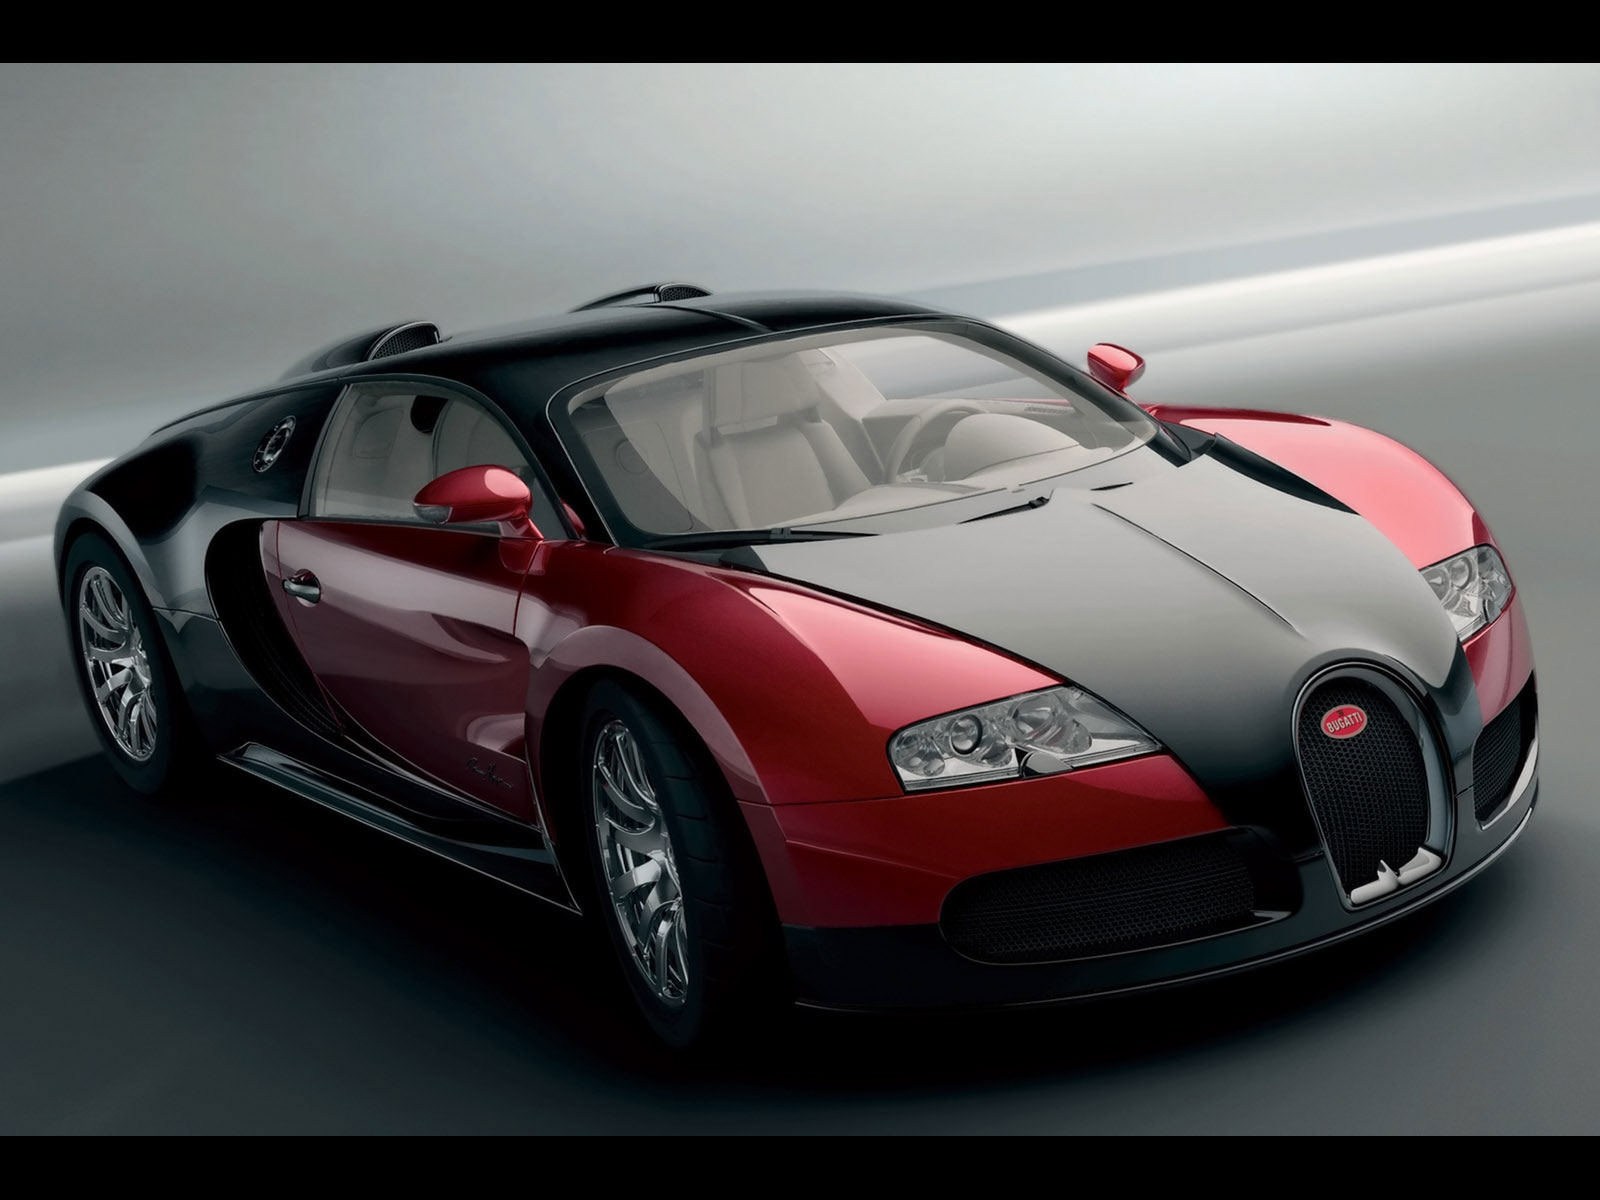 Car-wallpapers-bugatti-veyron